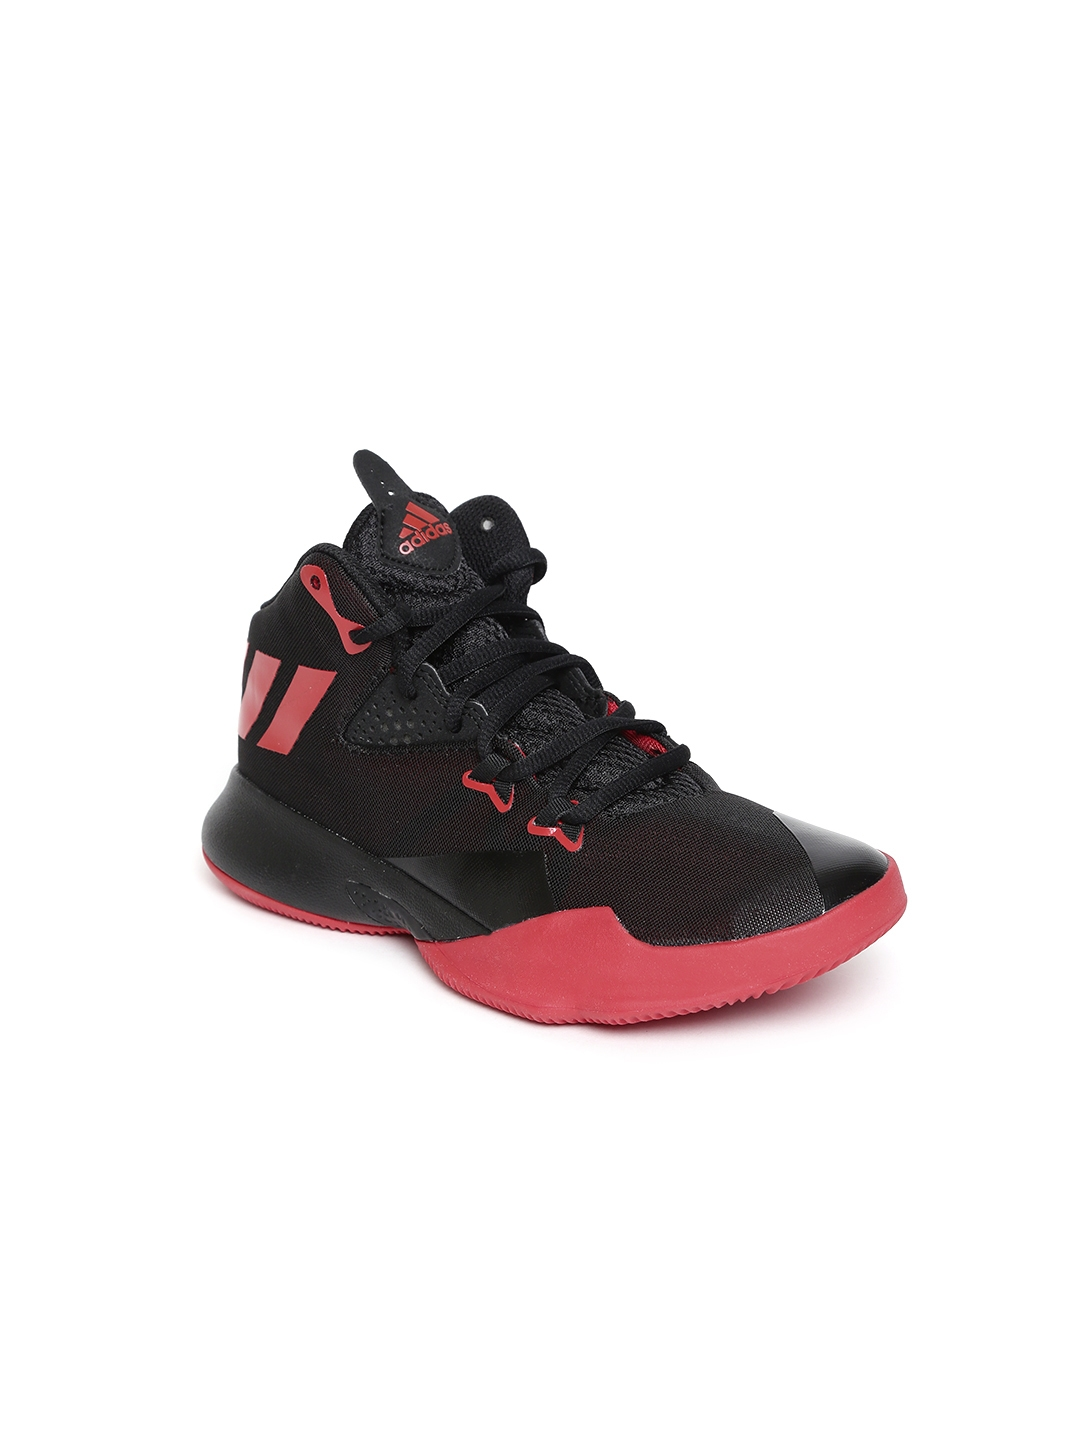 f7fc3d5b1 11502191947693-Adidas-Unisex-Black-Textile-Mid-Top-Basketball-Shoes-6371502191947437-1.jpg